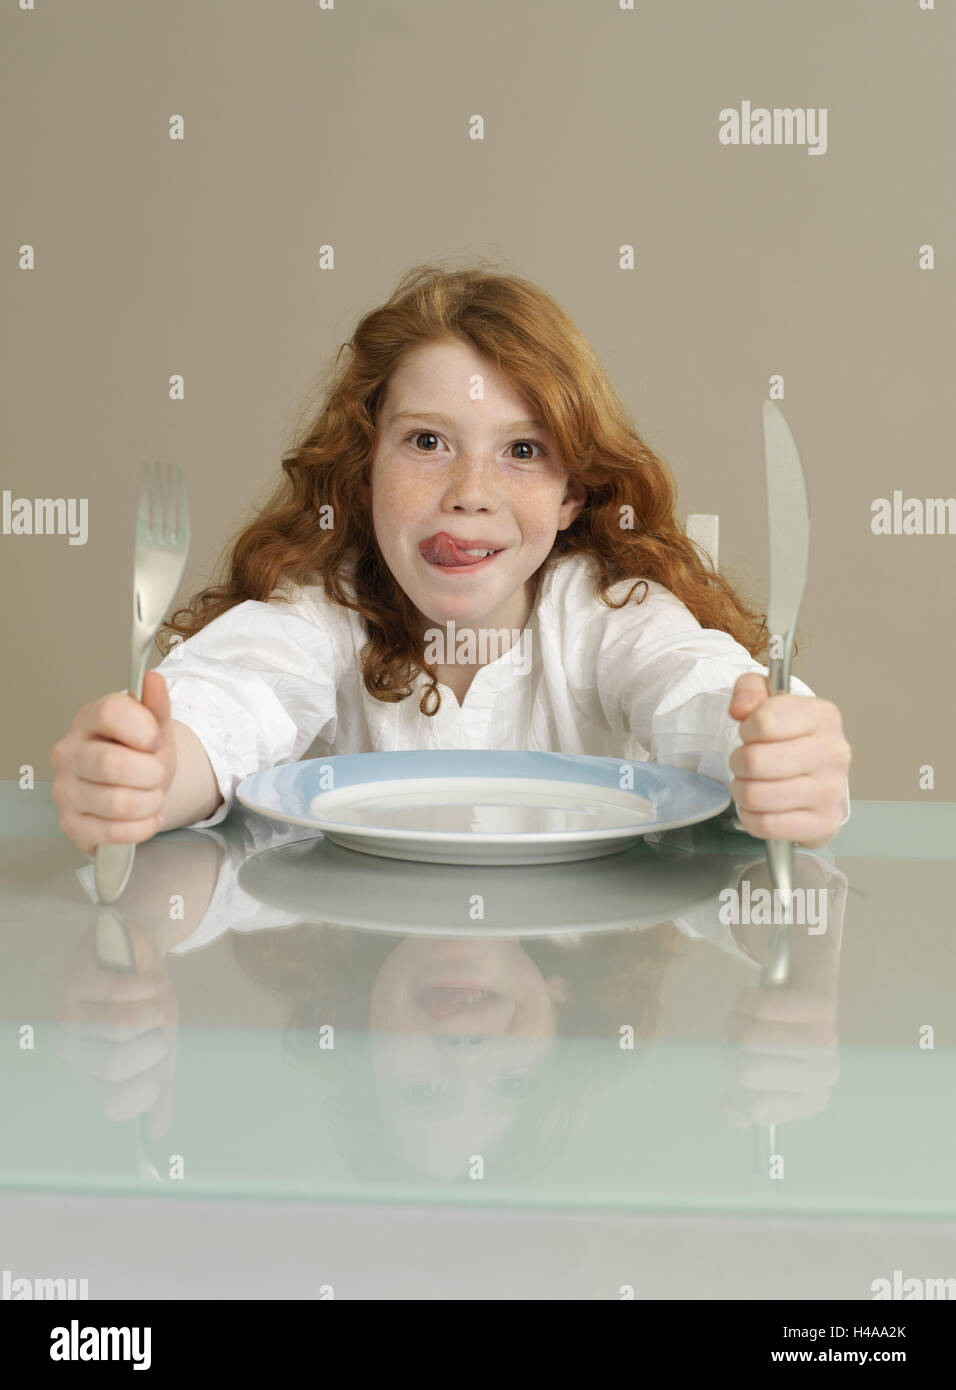 Table, girl, red-haired, cutlery, facial play, tongue, lips, leak, hungry, wait, portrait, dining table, cover, - Stock Image